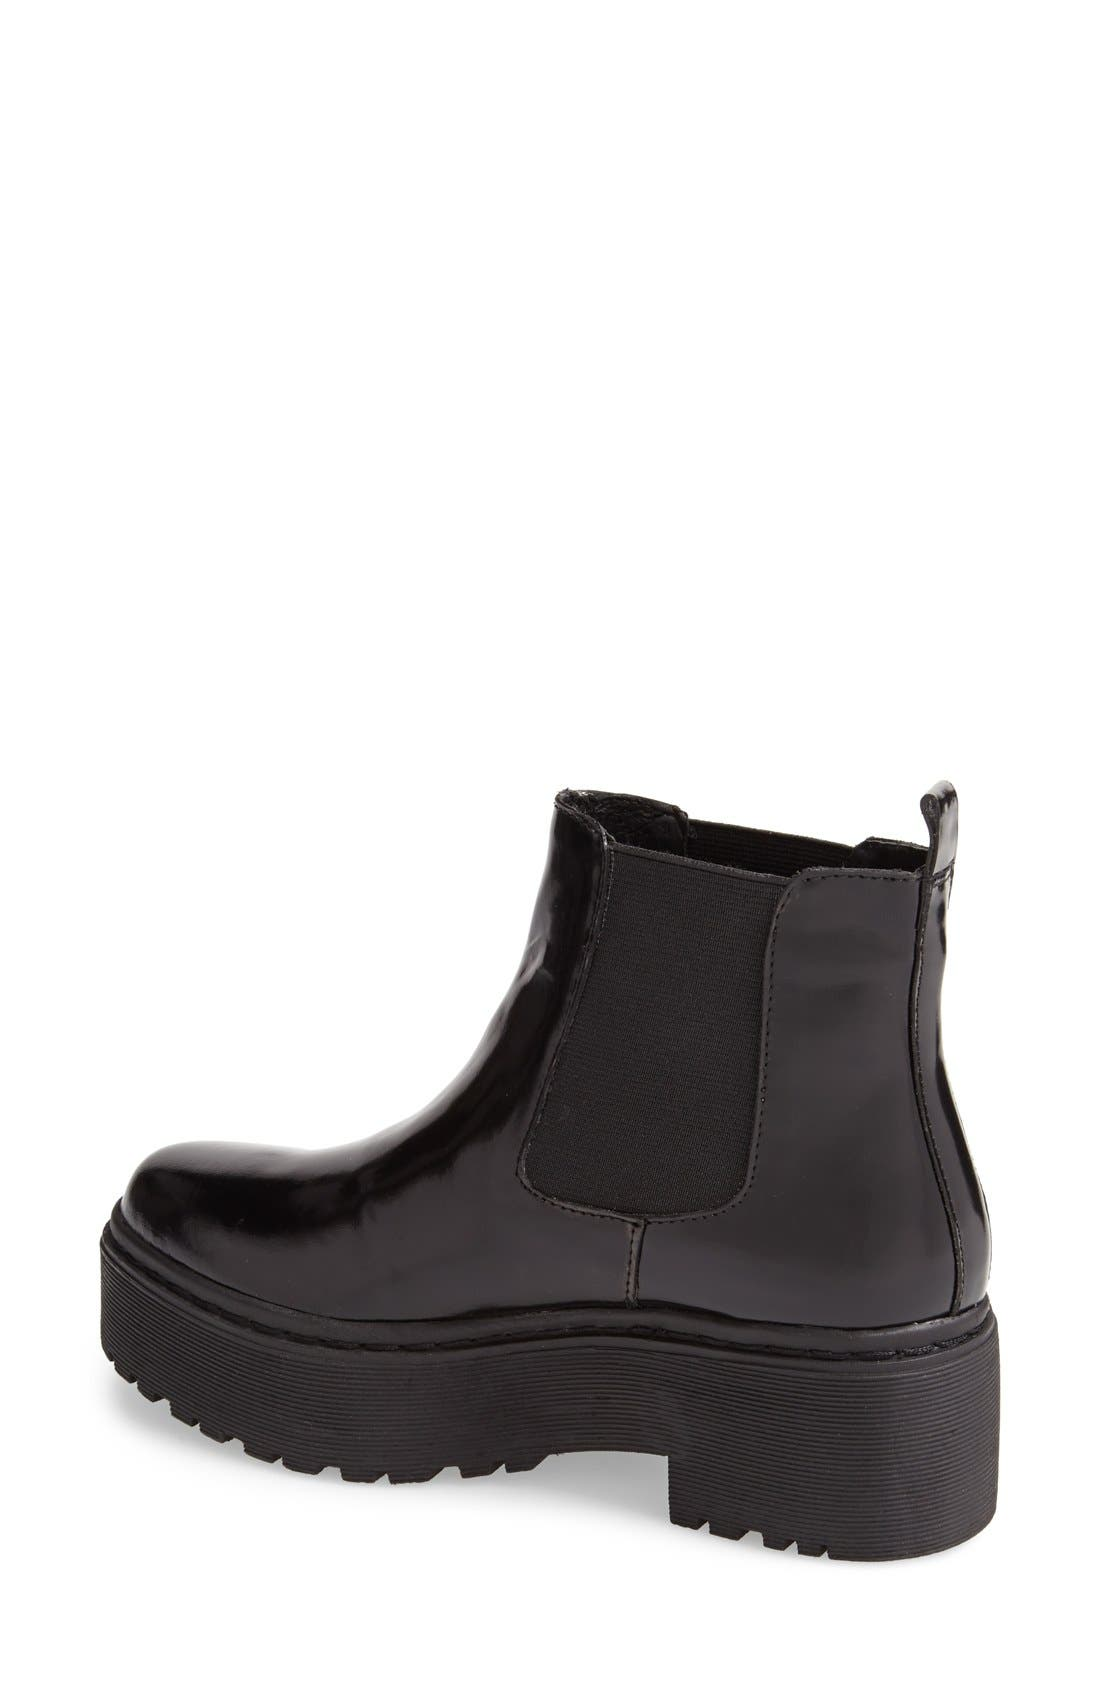 Alternate Image 2  - Jeffrey Campbell 'Universal' Chelsea Boot (Women)